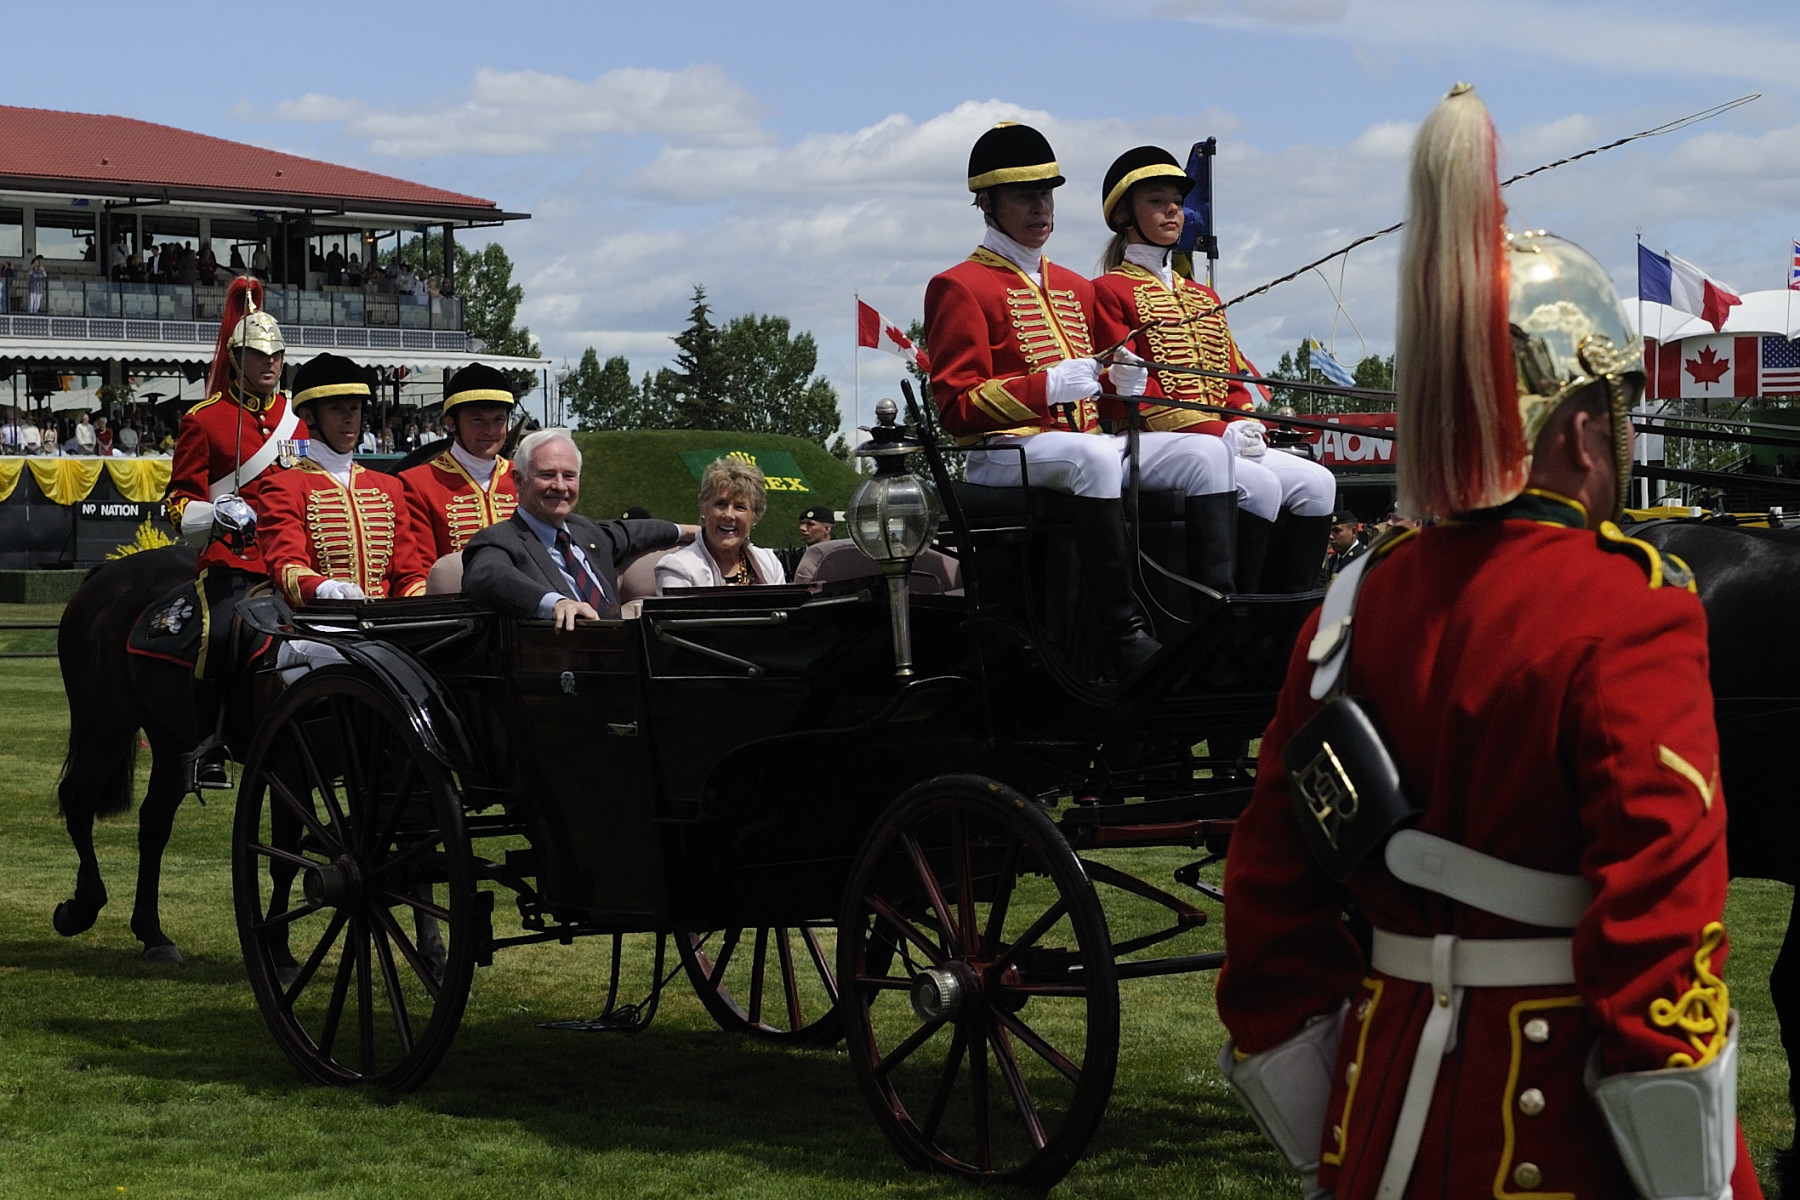 Their Excellencies arrived by landau and were greeted by the Right Honourable Stephen Harper, Prime Minister of Canada, and Mrs. Laureen Harper.